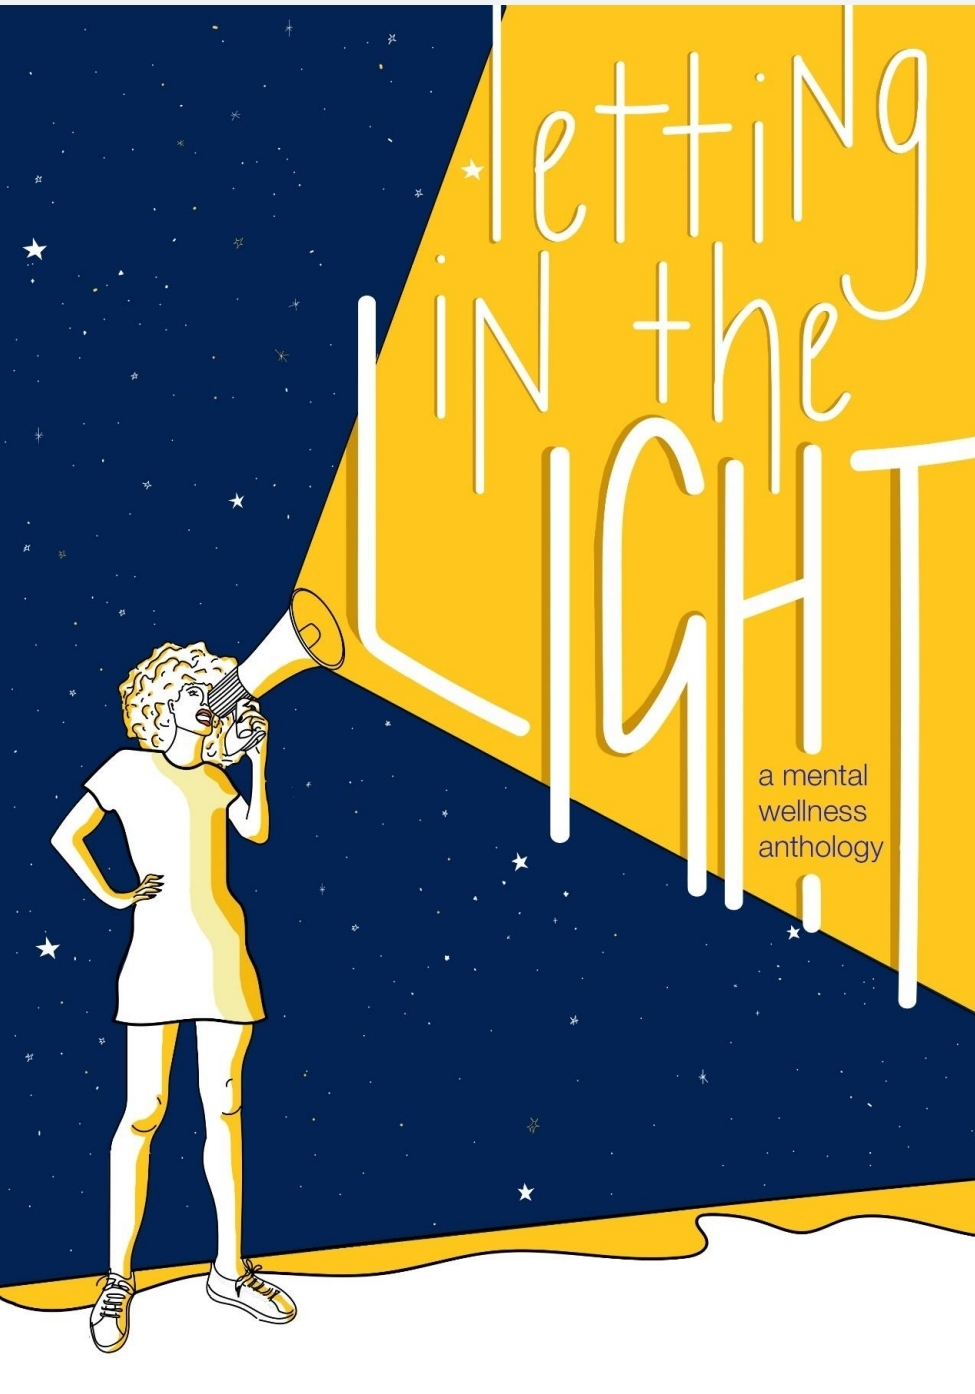 Letting in the light, mental wellness anthology